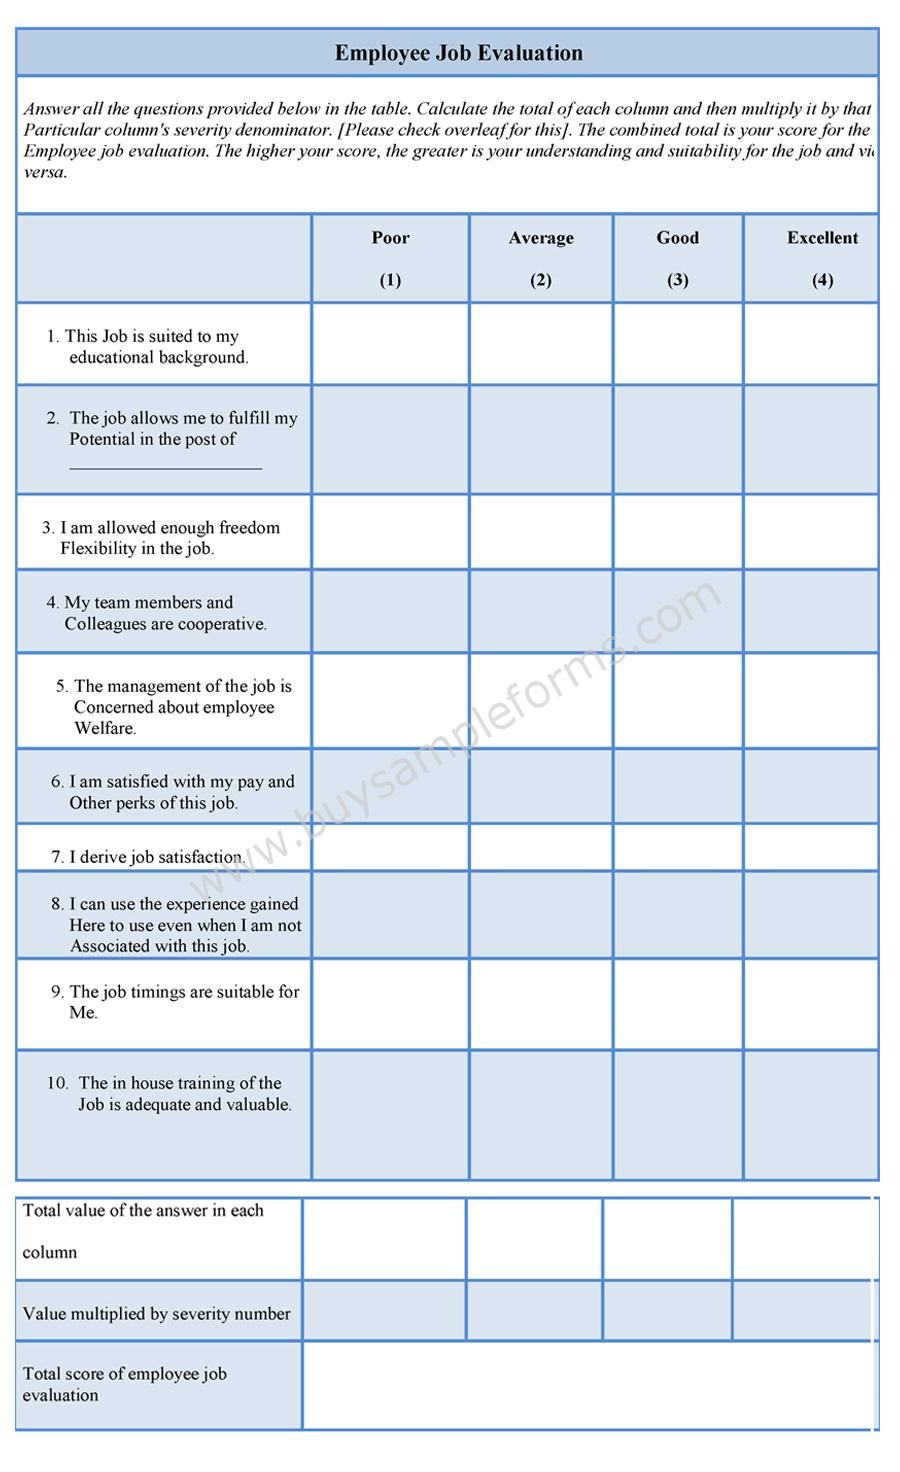 Employee Job Evaluation Form – Sample Employee Evaluation Forms